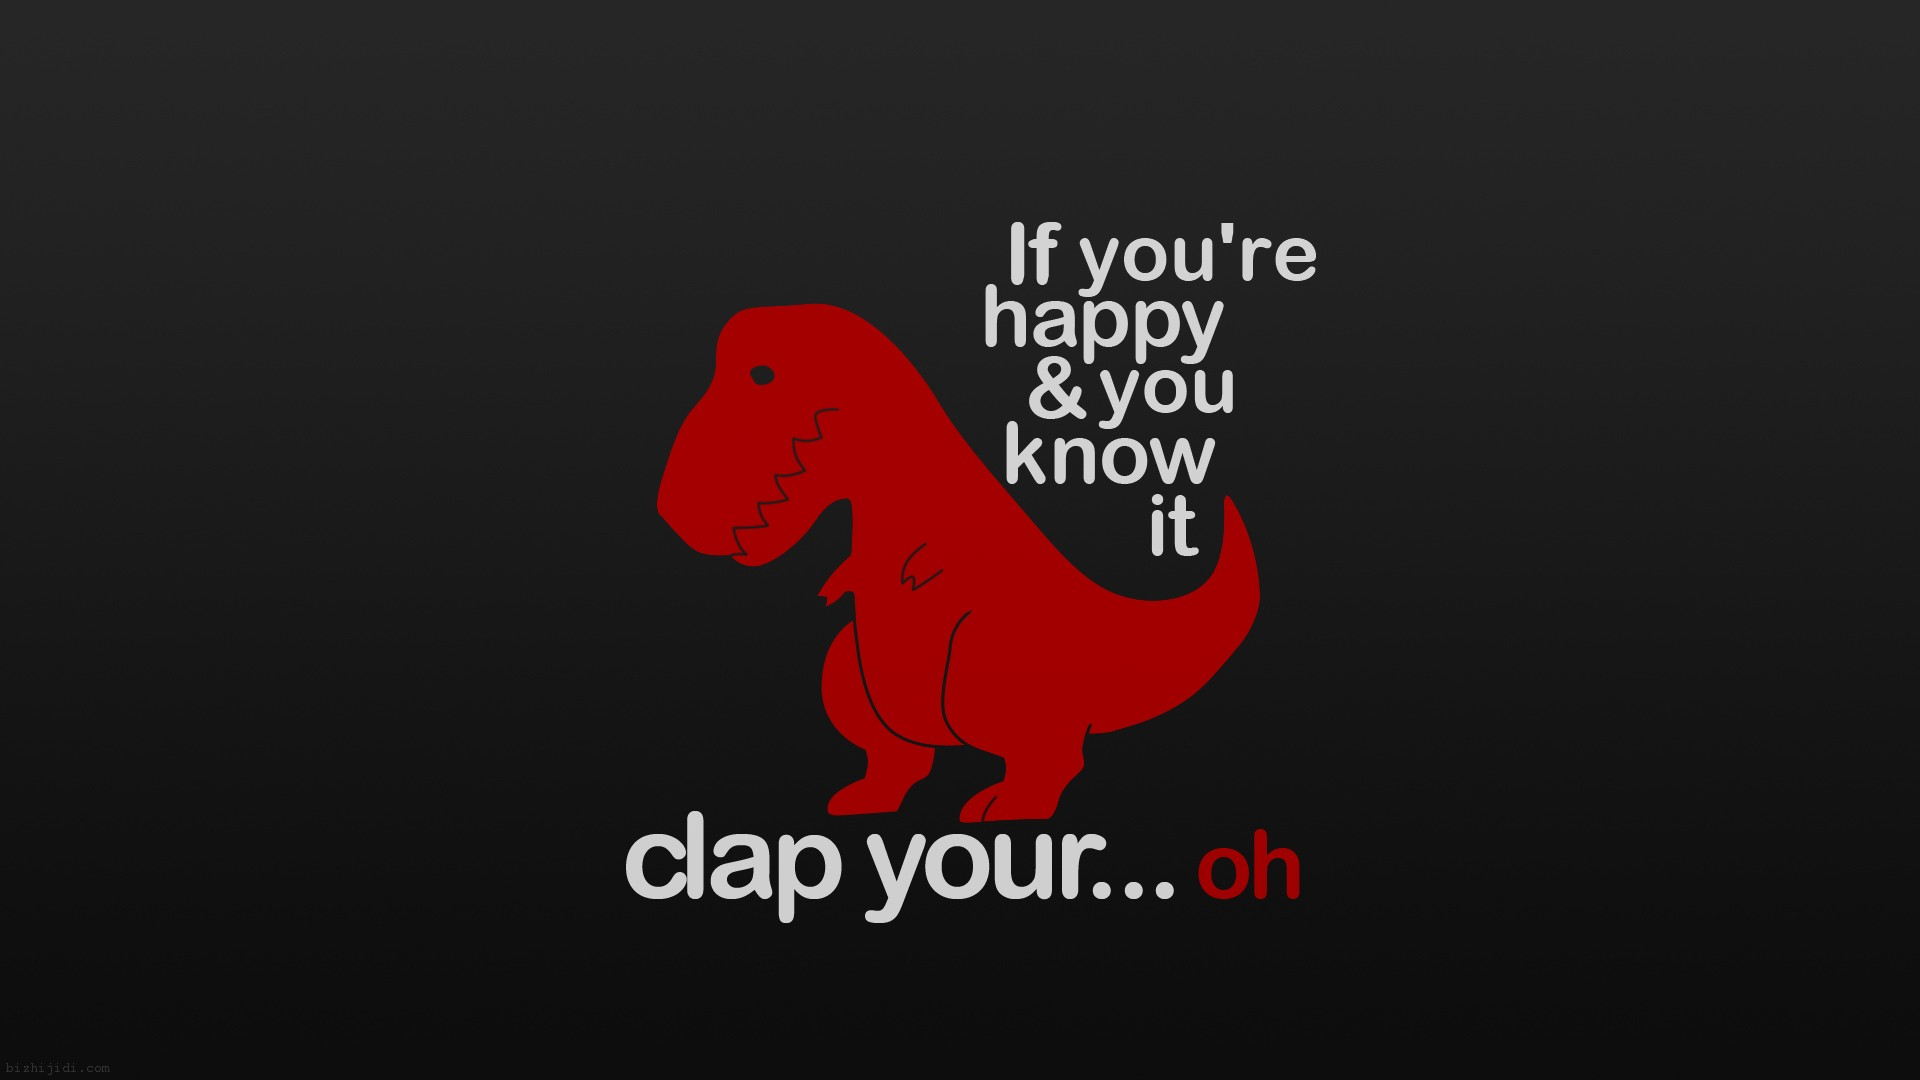 Funny Hd Wallpapers